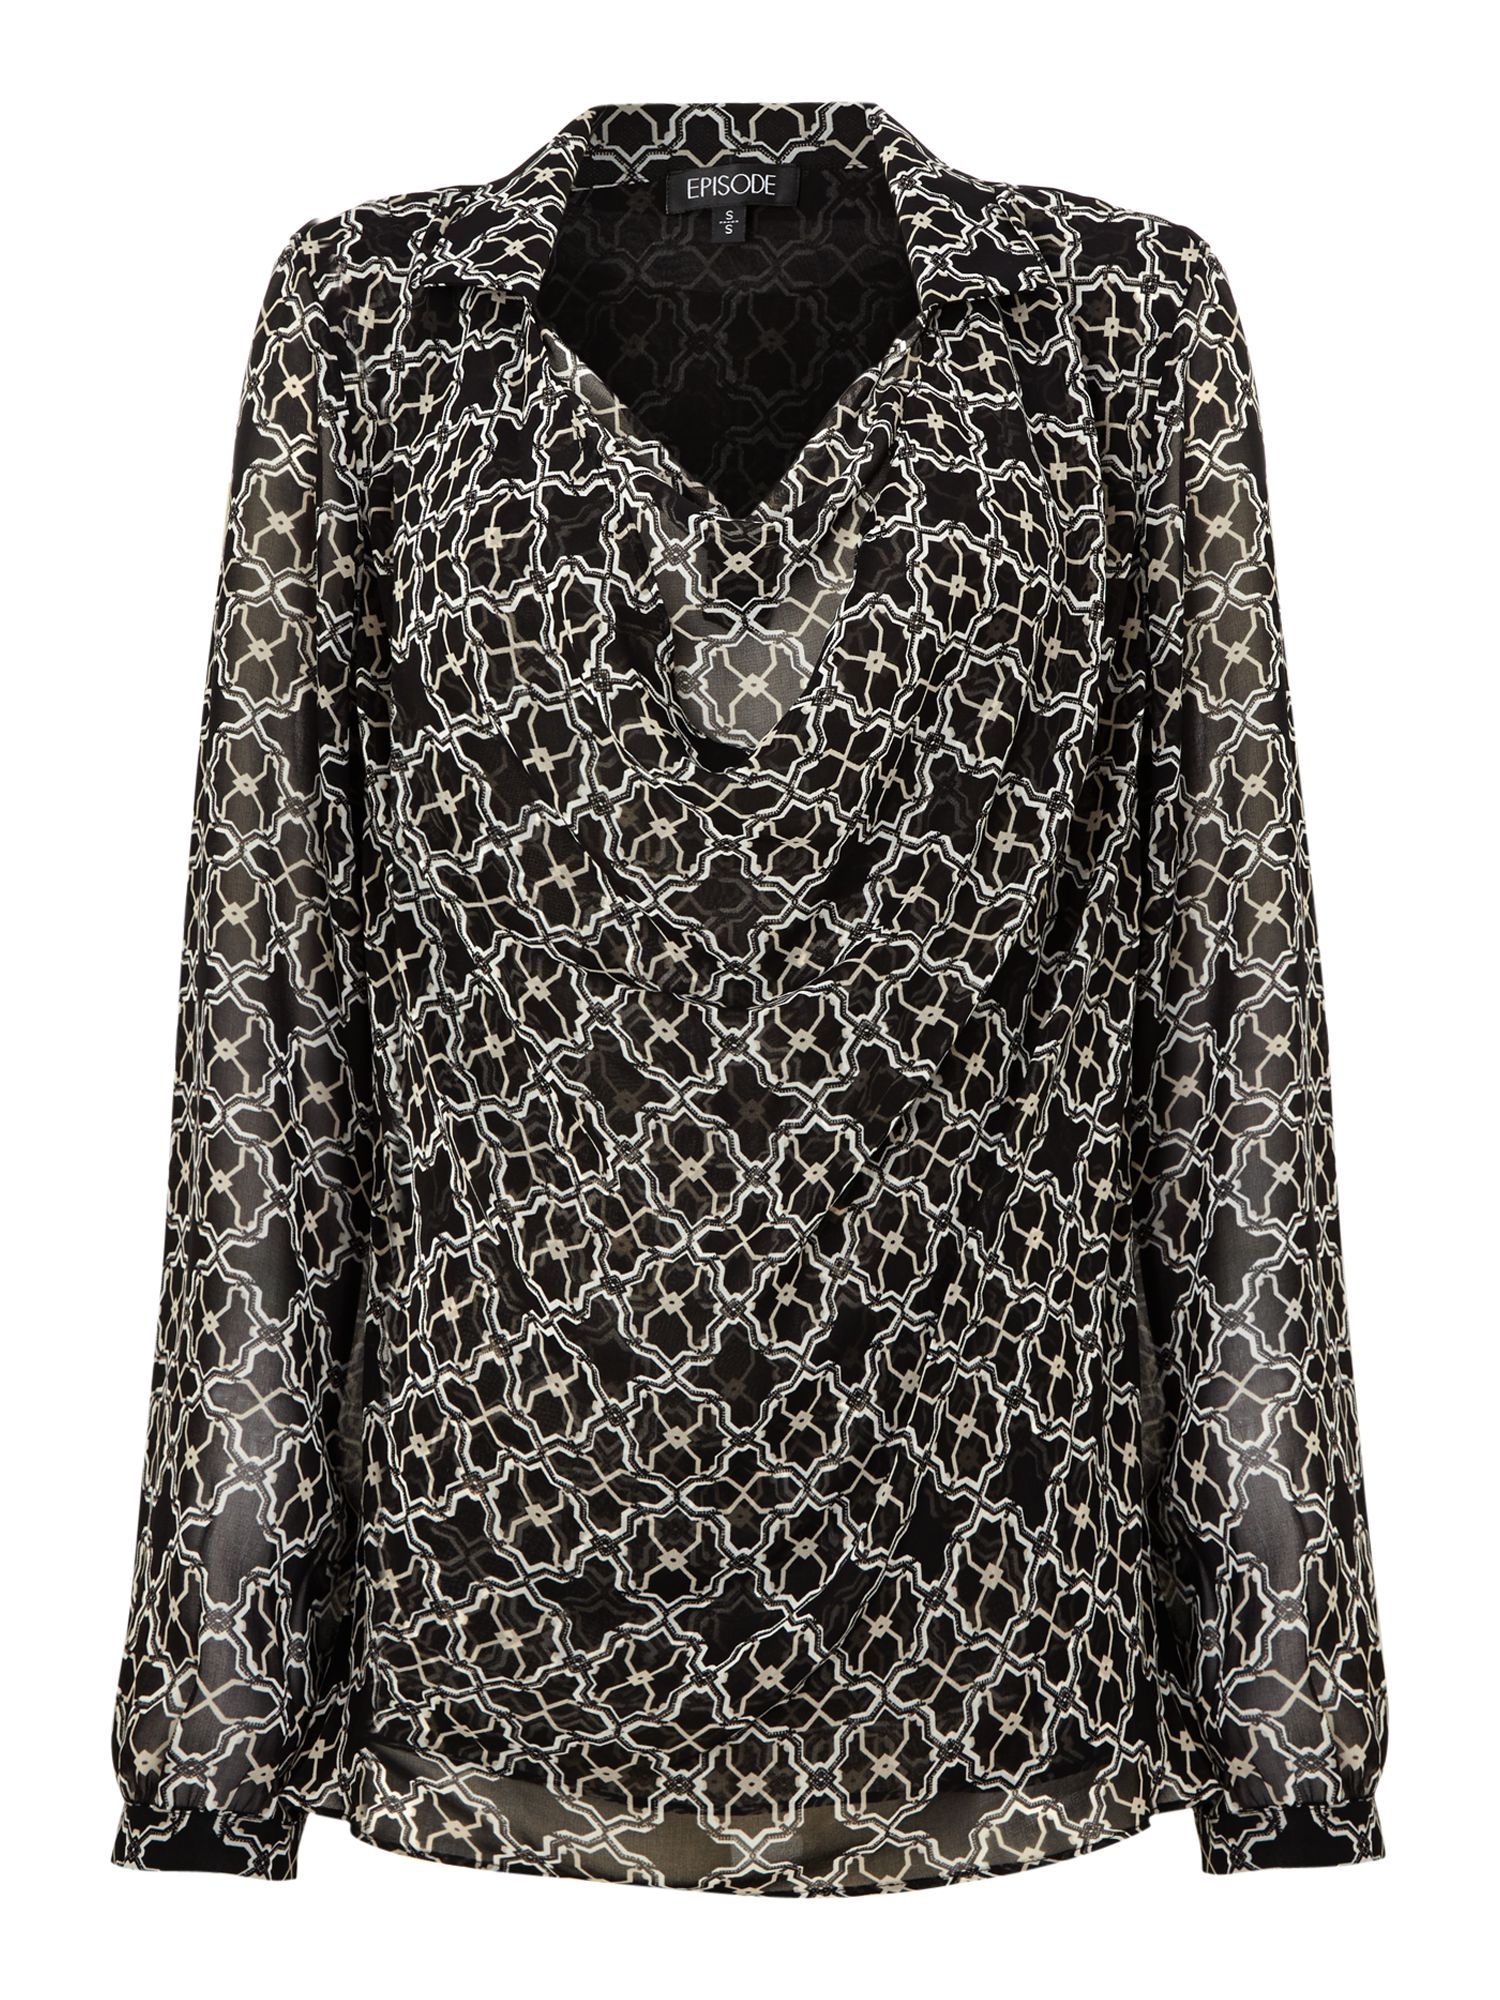 Tile Printed Blouse With A Cowl Neck